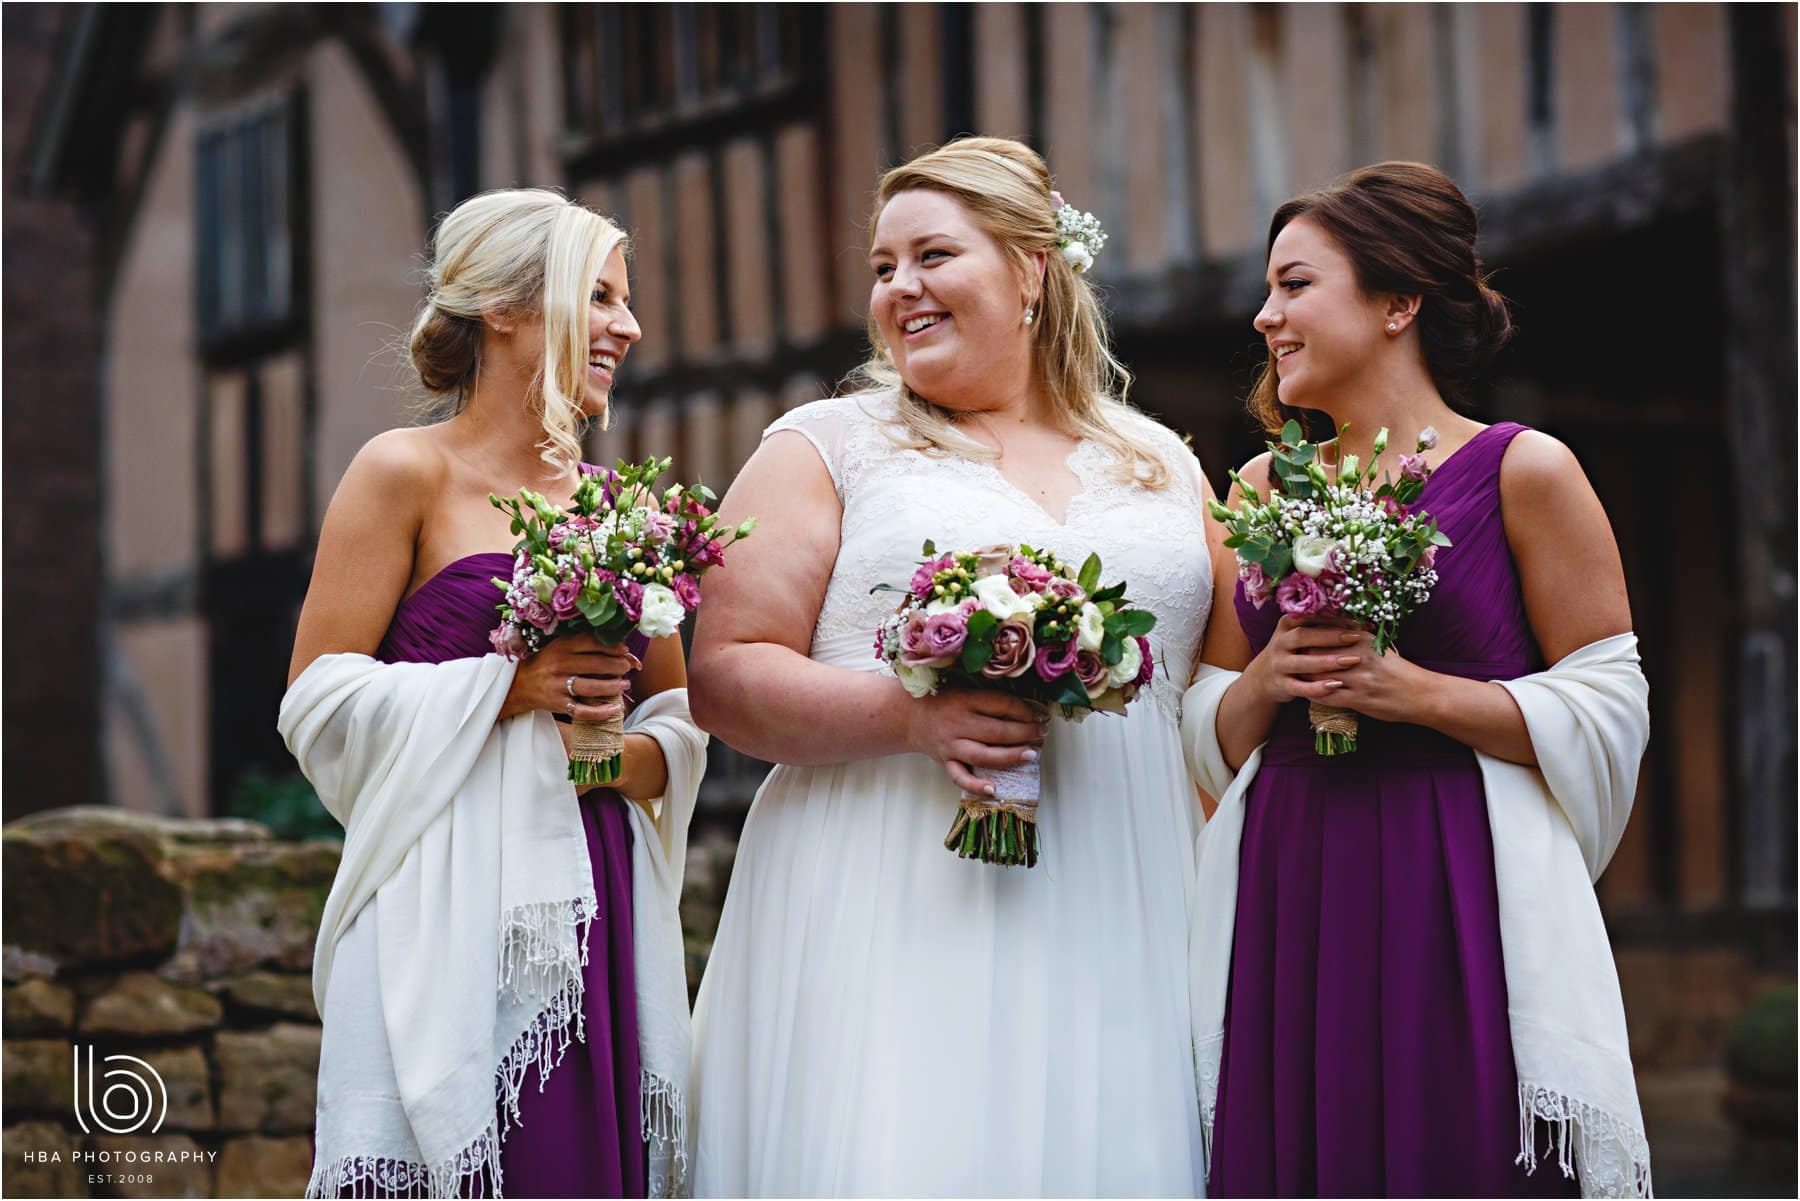 the bride with ther bridesmaids